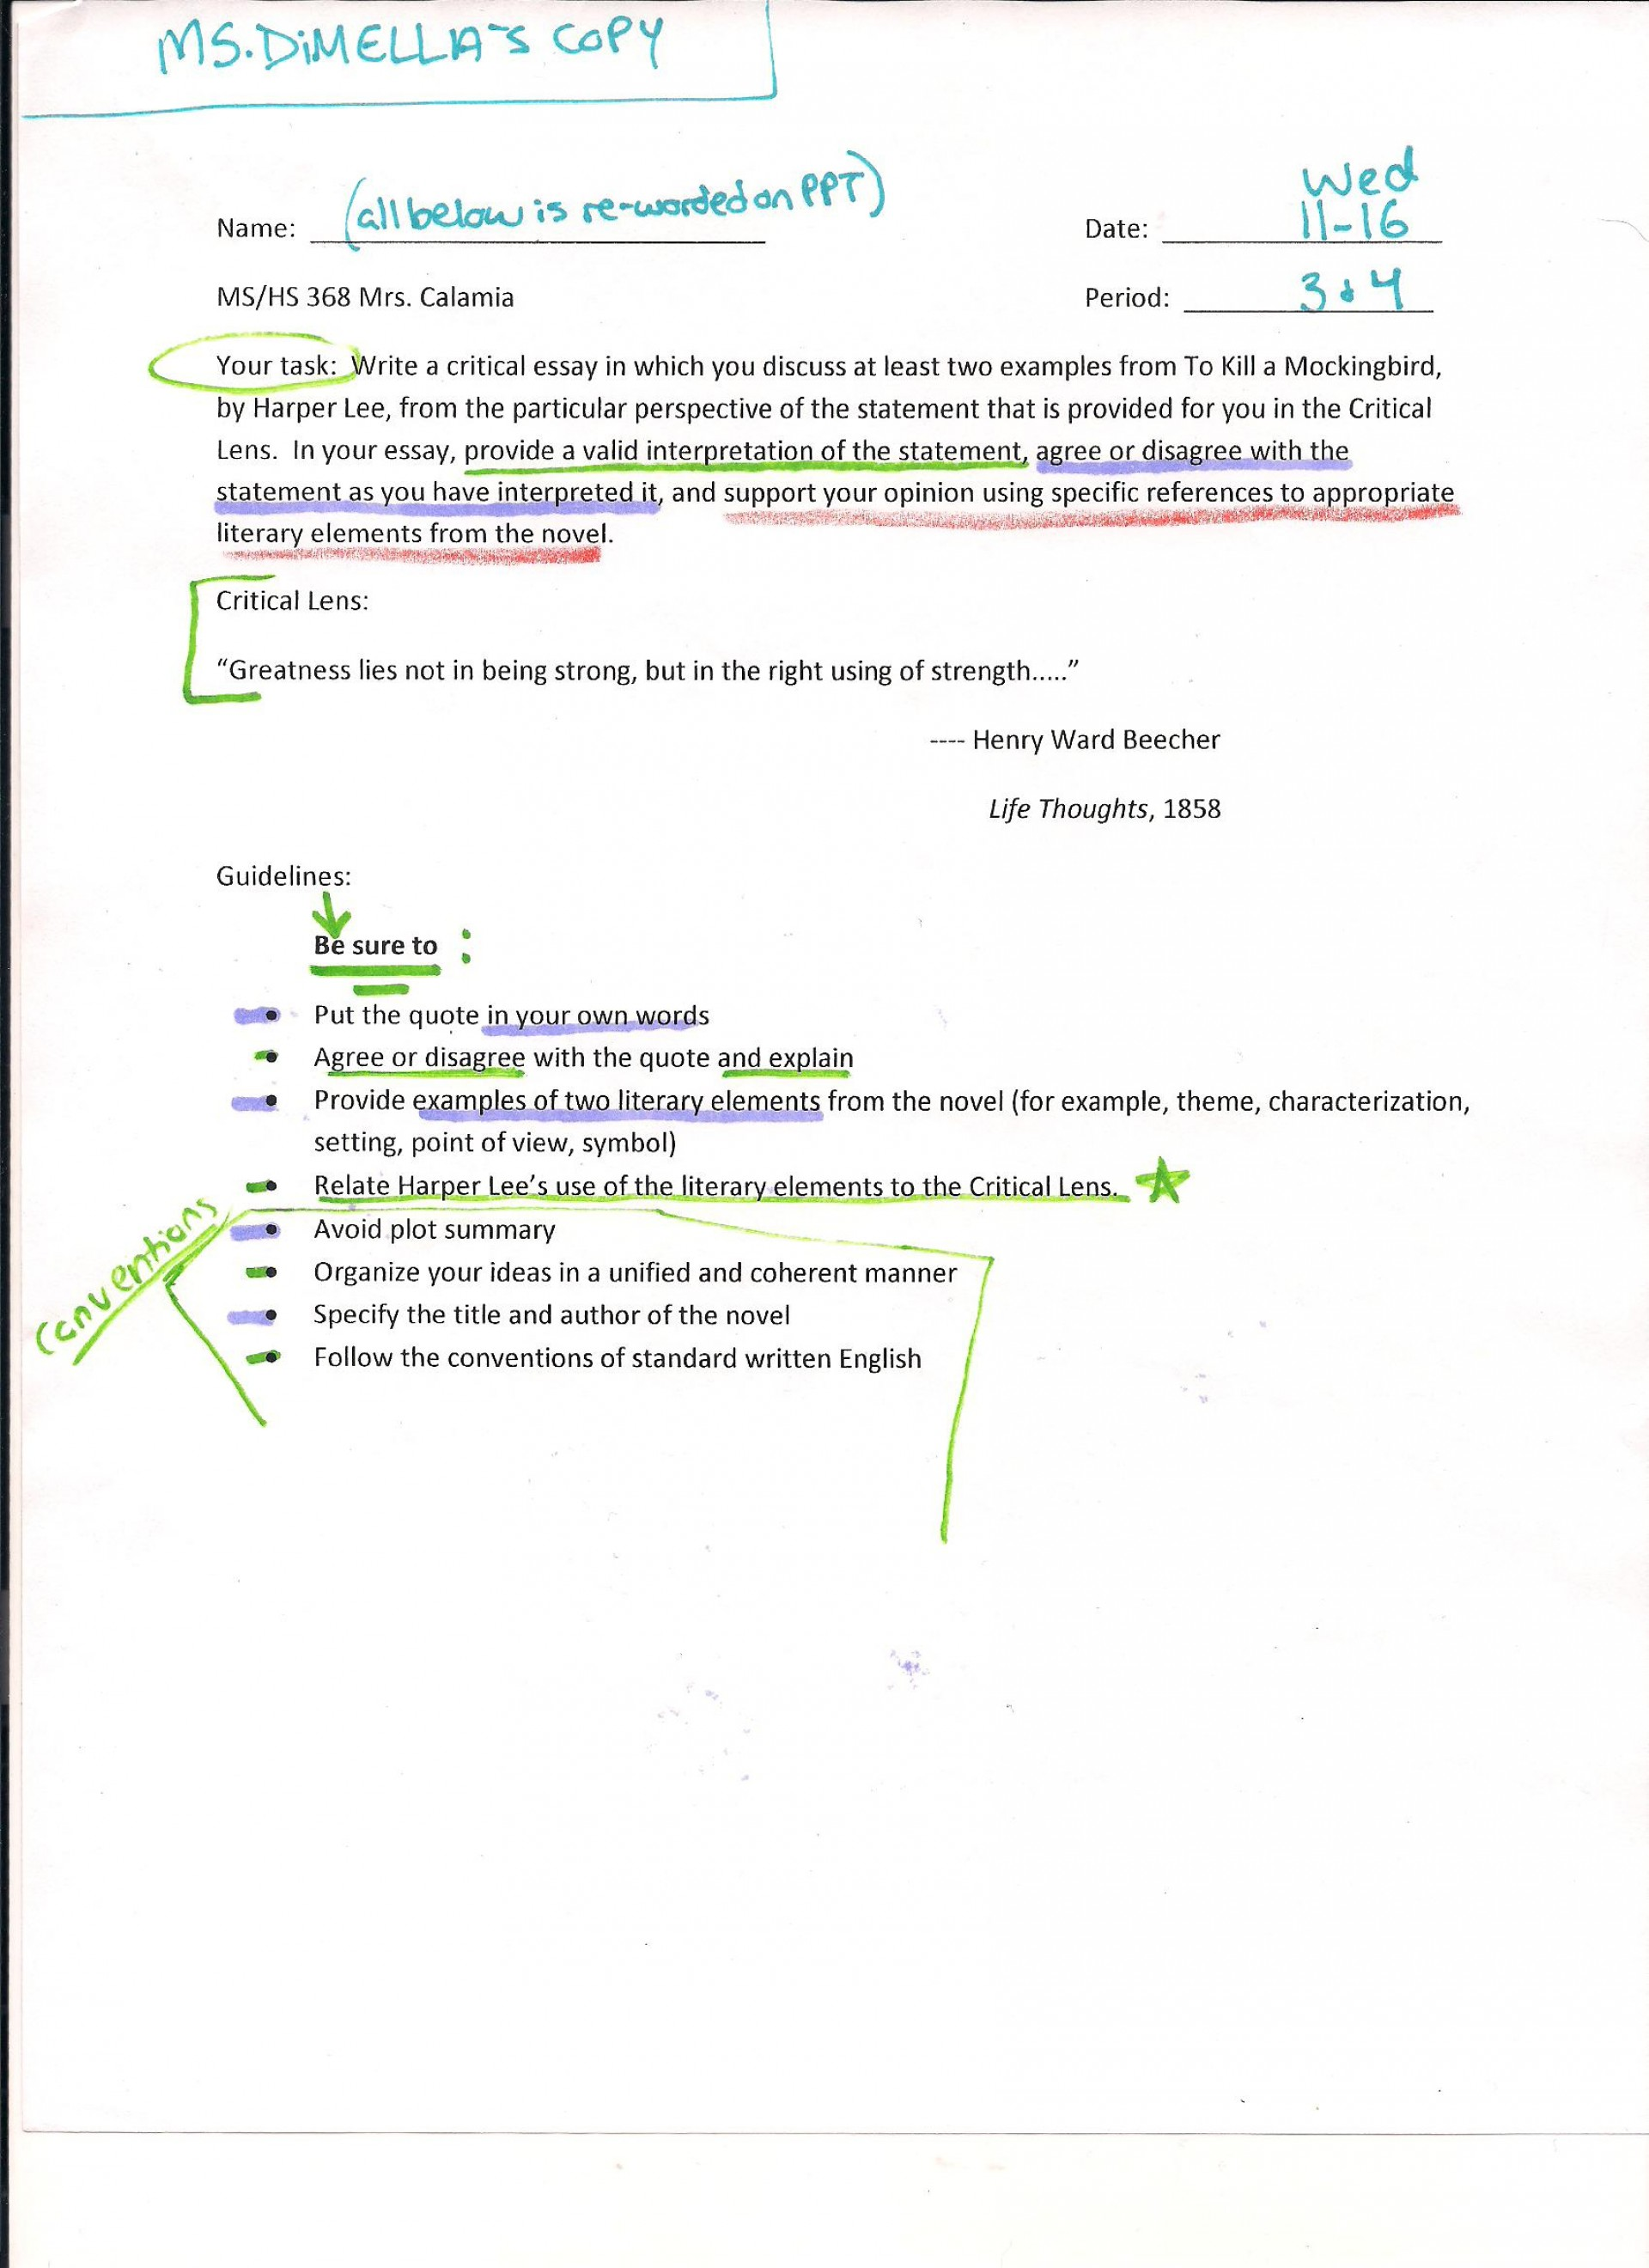 022 Critical Lens Essay  Hs Planning Midterm Best Sample Template Example English Regents1920